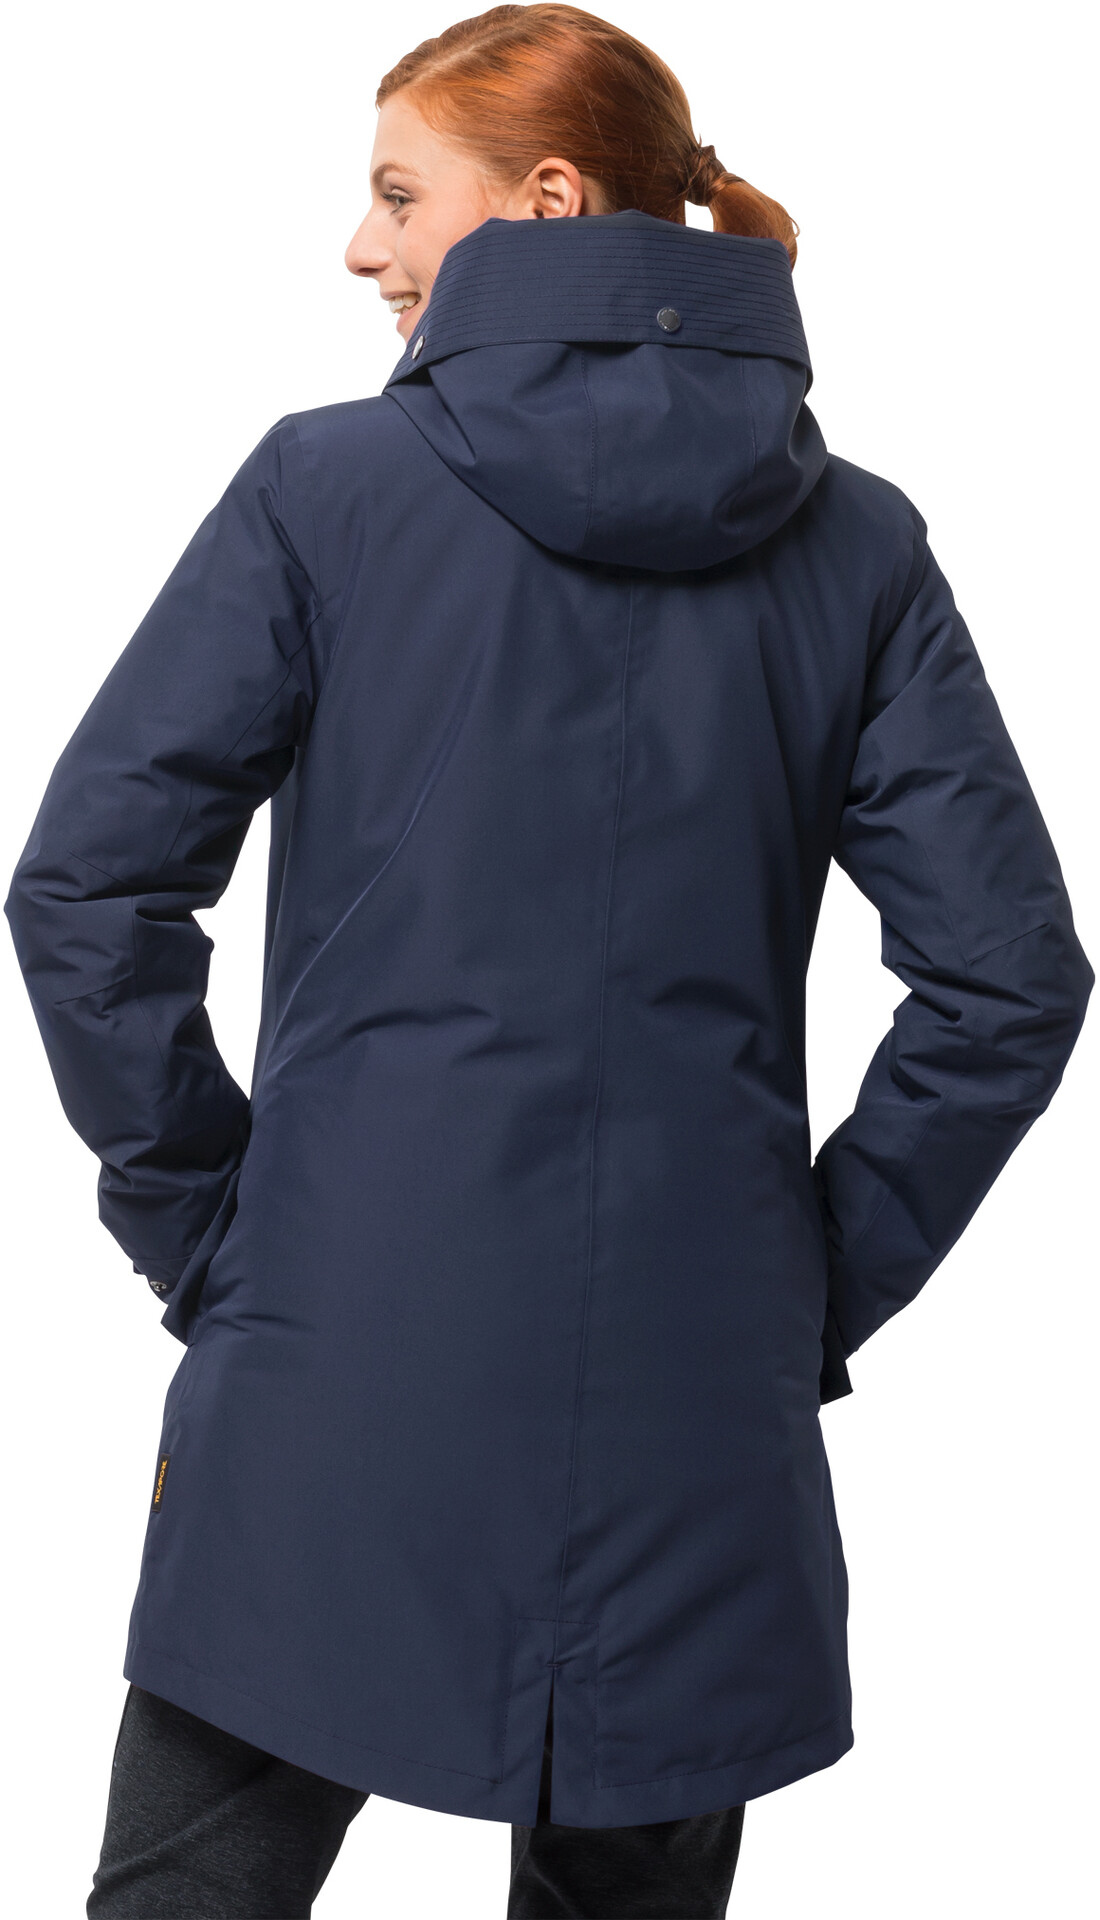 At Jack Bay co Jacket Monterey Addnature Blue Women Wolfskin uk wH6rHqYx